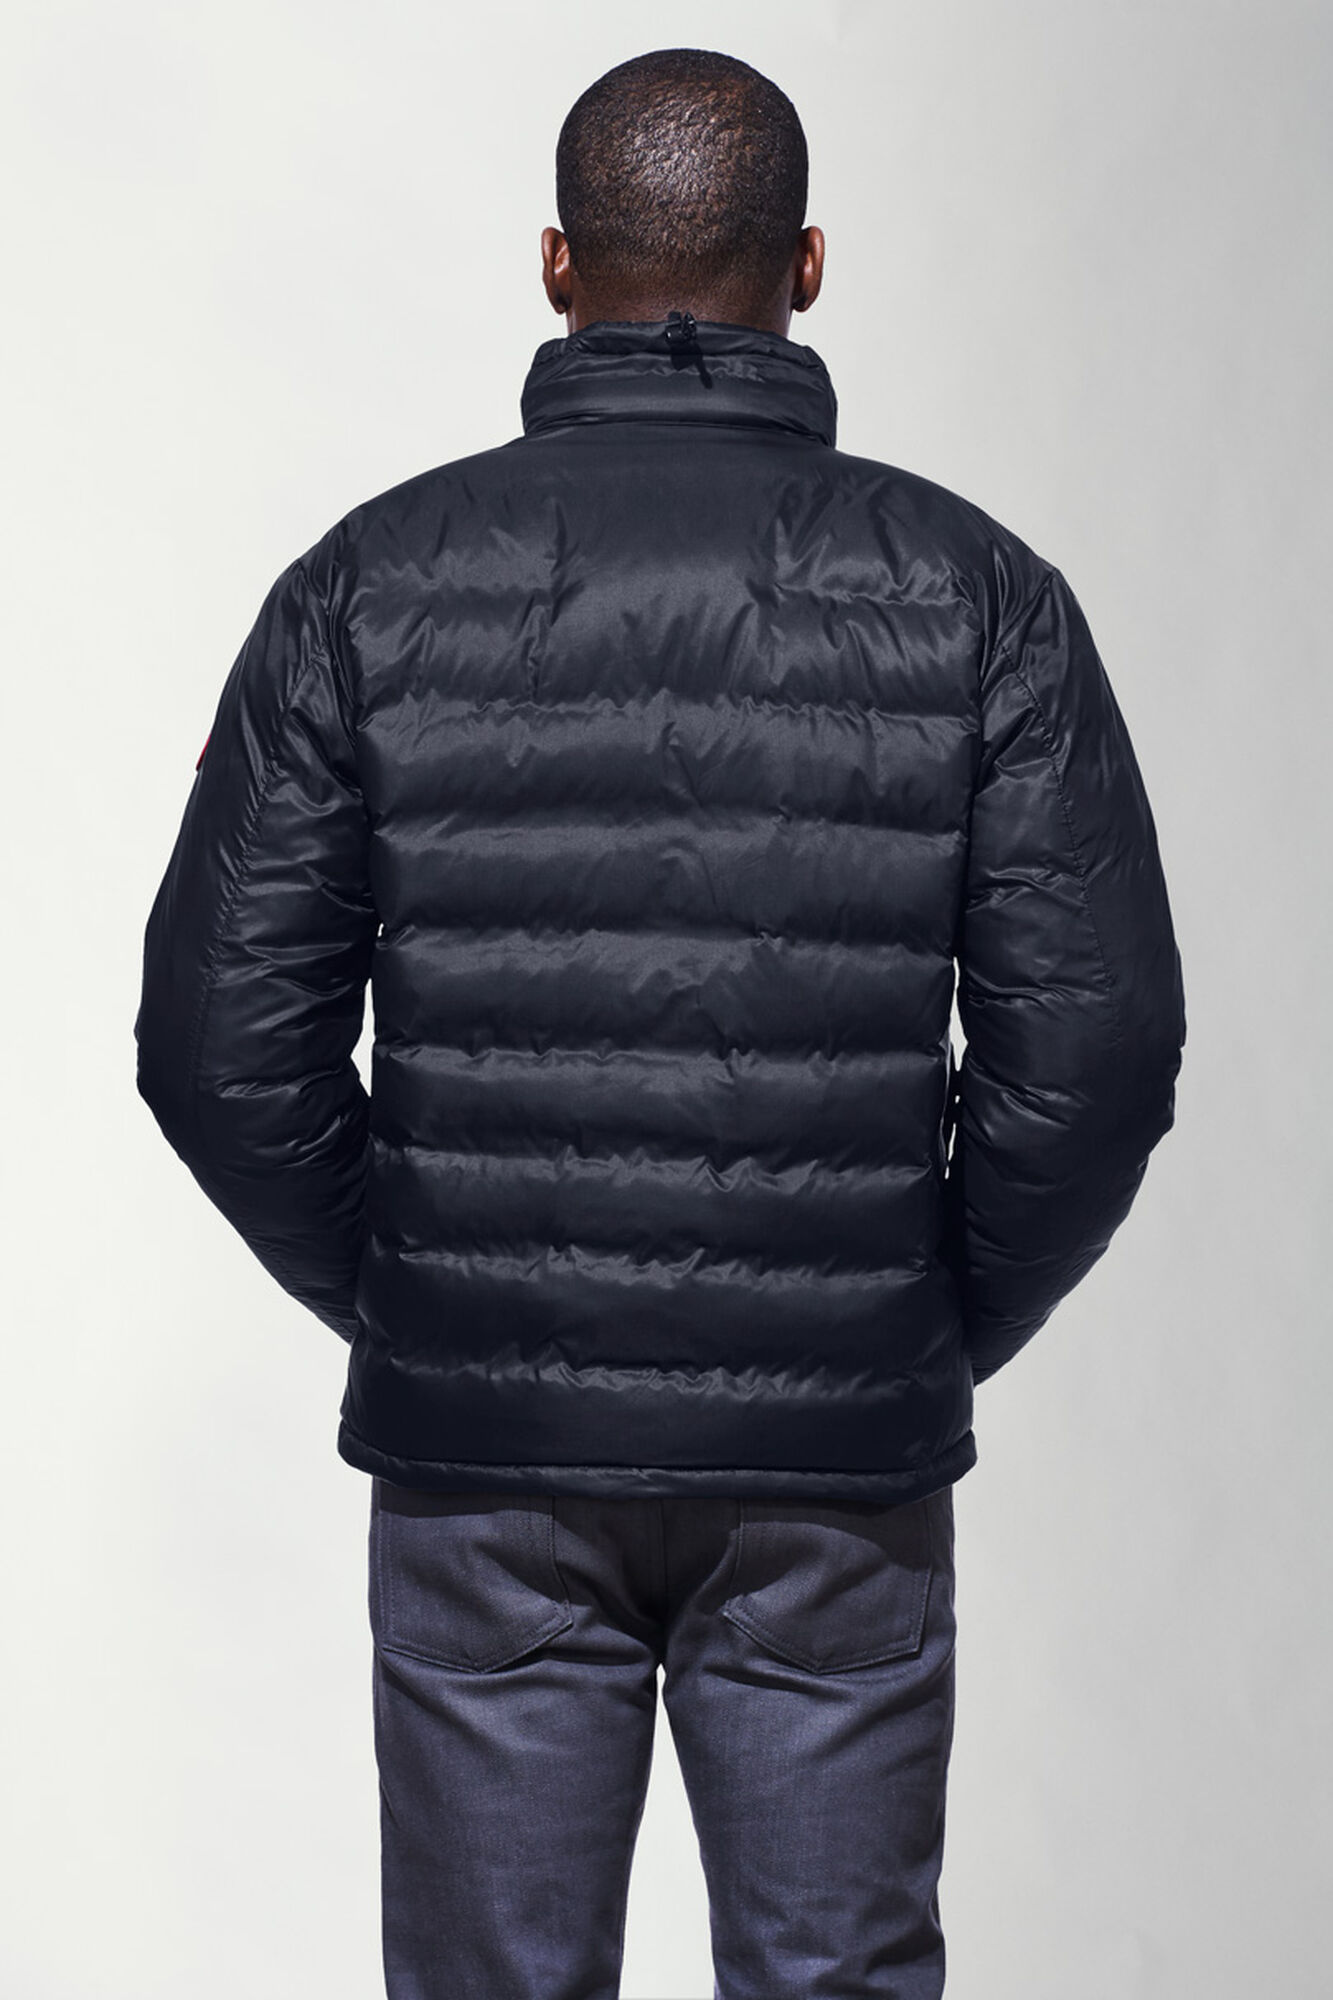 canada goose Canada goose outlet online sale - buy canada goose jackets/coats/parka for men & women and save big discount onlinefree shipping.